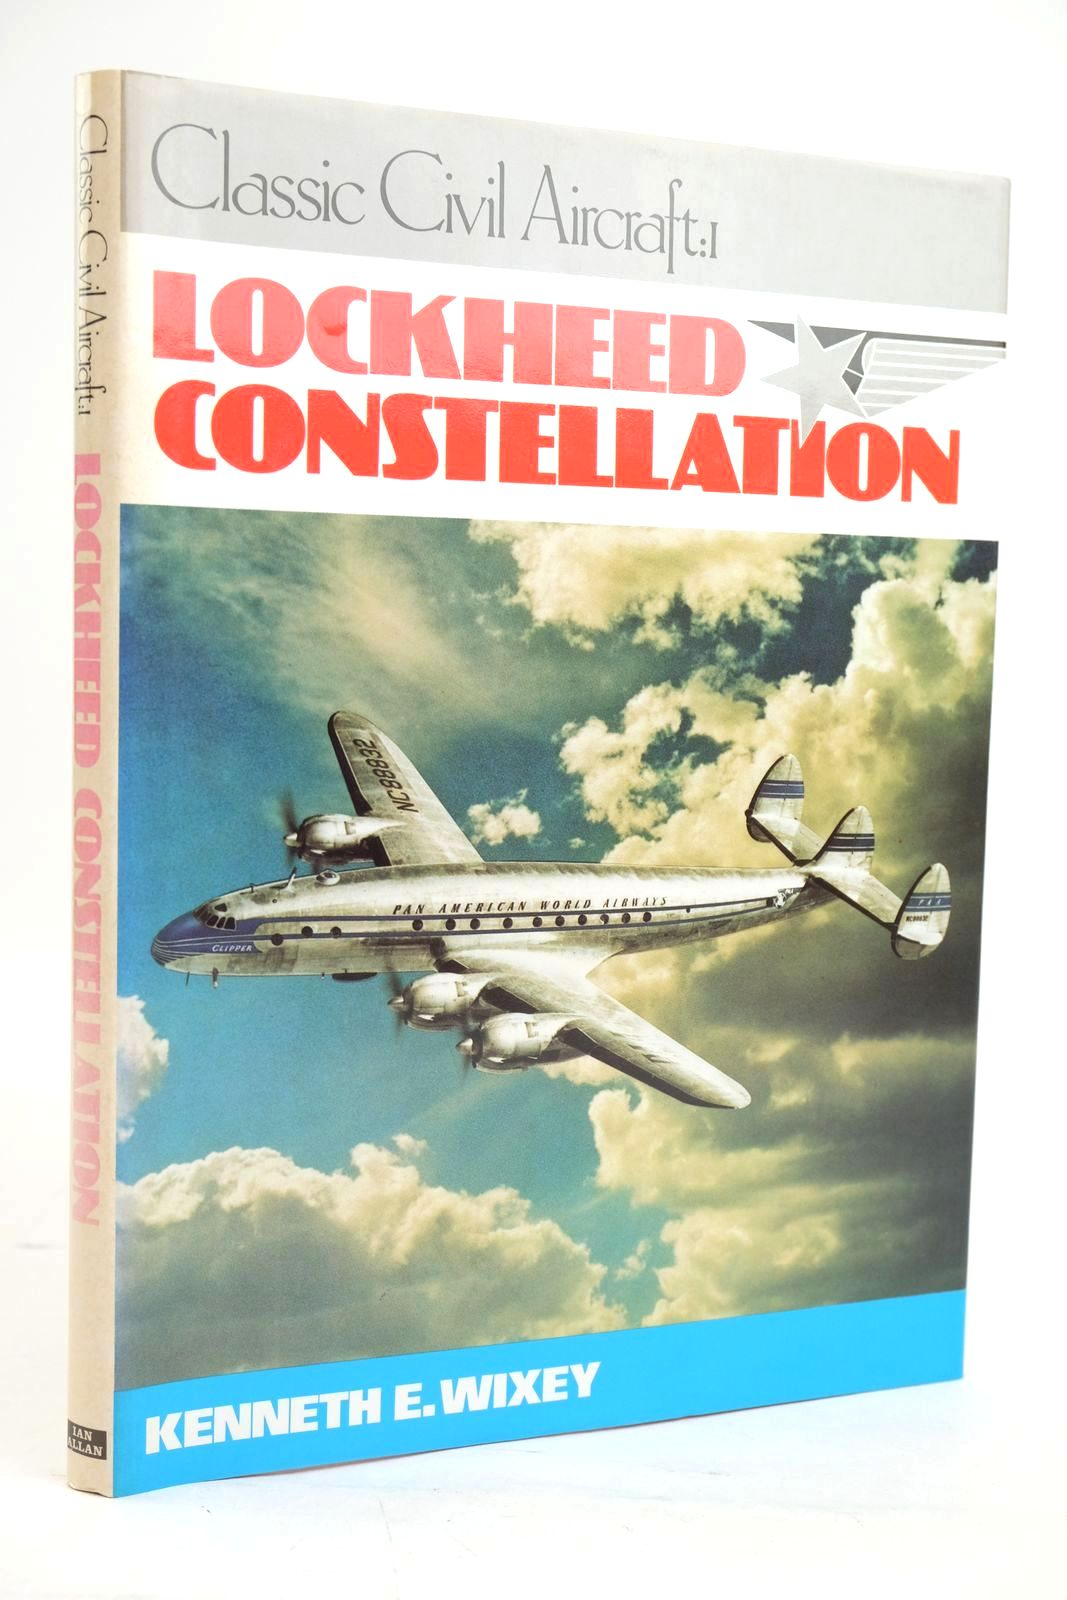 Photo of CLASSIC CIVIL AIRCRAFT:1 LOCKHEED CONSTELLATION written by Wixey, Kenneth E. published by Ian Allan Ltd. (STOCK CODE: 1319651)  for sale by Stella & Rose's Books